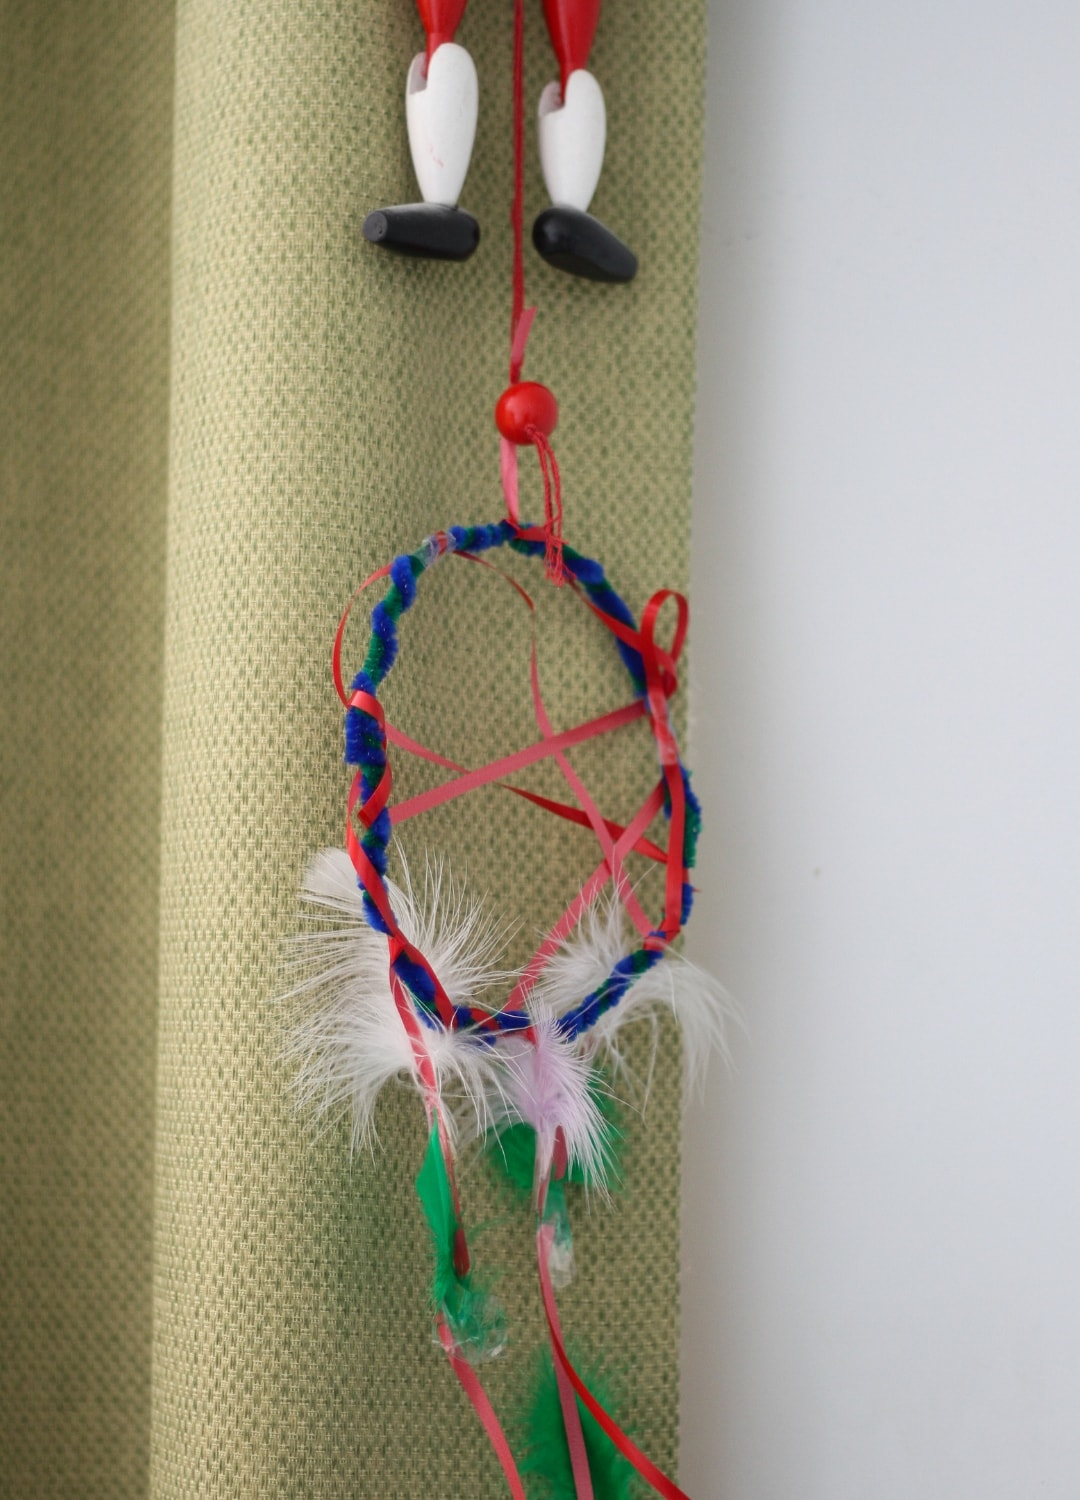 A dream catcher made by a child, hanging down from a curtain with the legs of a wooden toy above